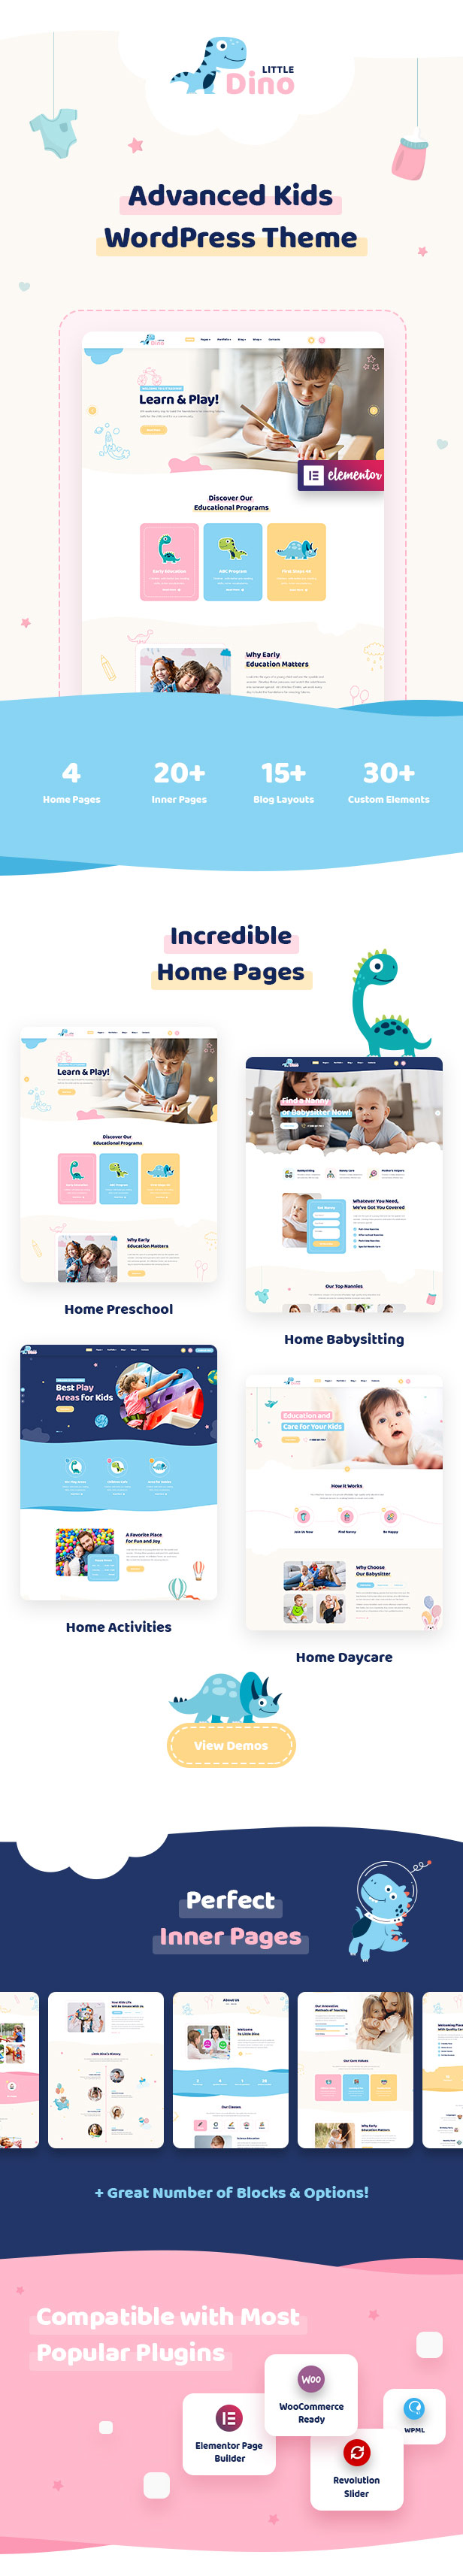 Littledino - Modern Kids WordPress Theme - 1